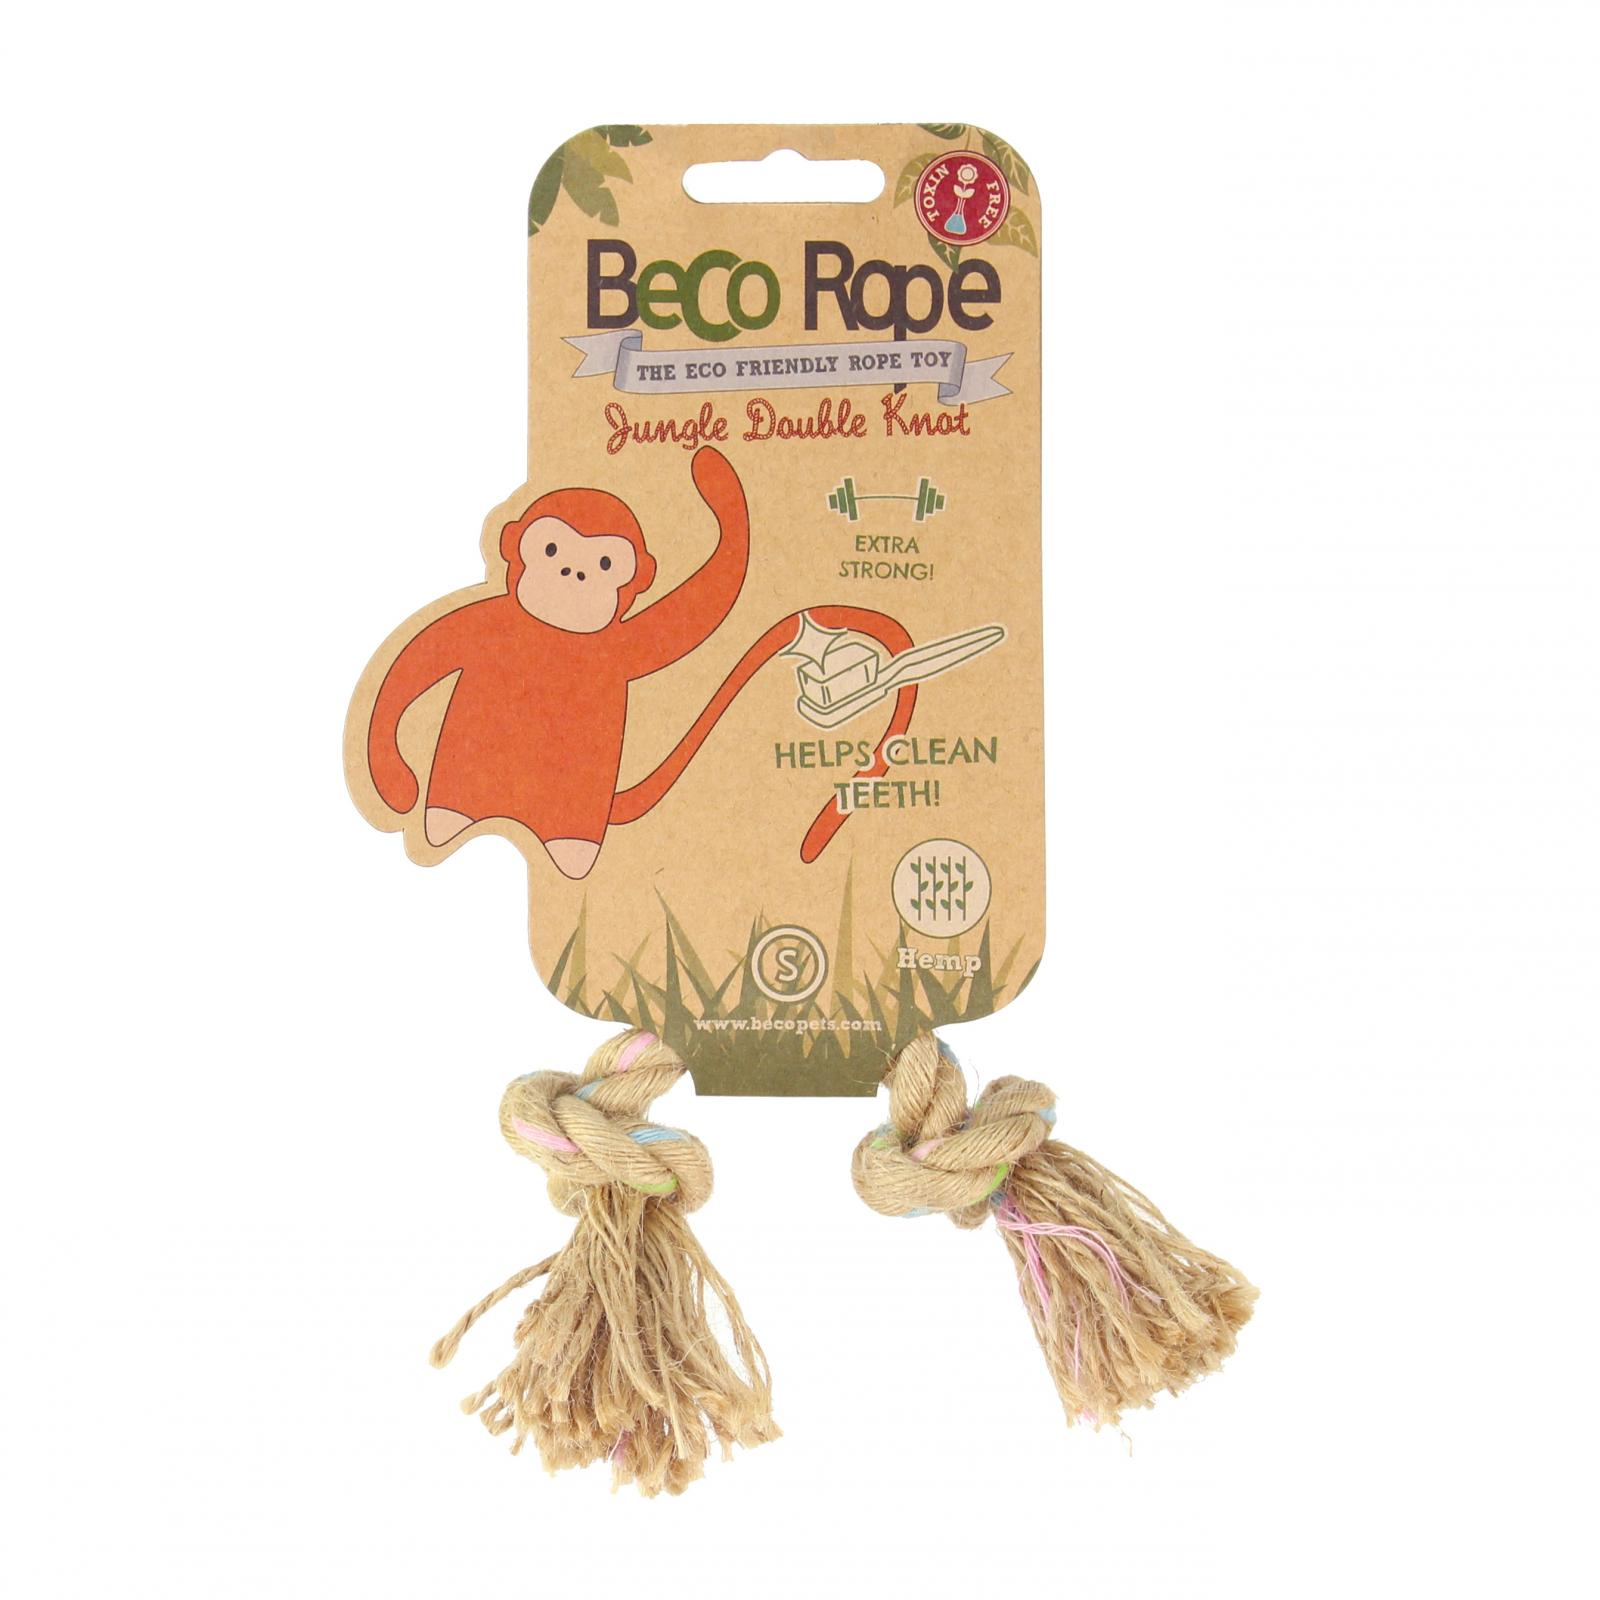 Beco Pets Beco Rope Jungle Double Knot Small 1 ks